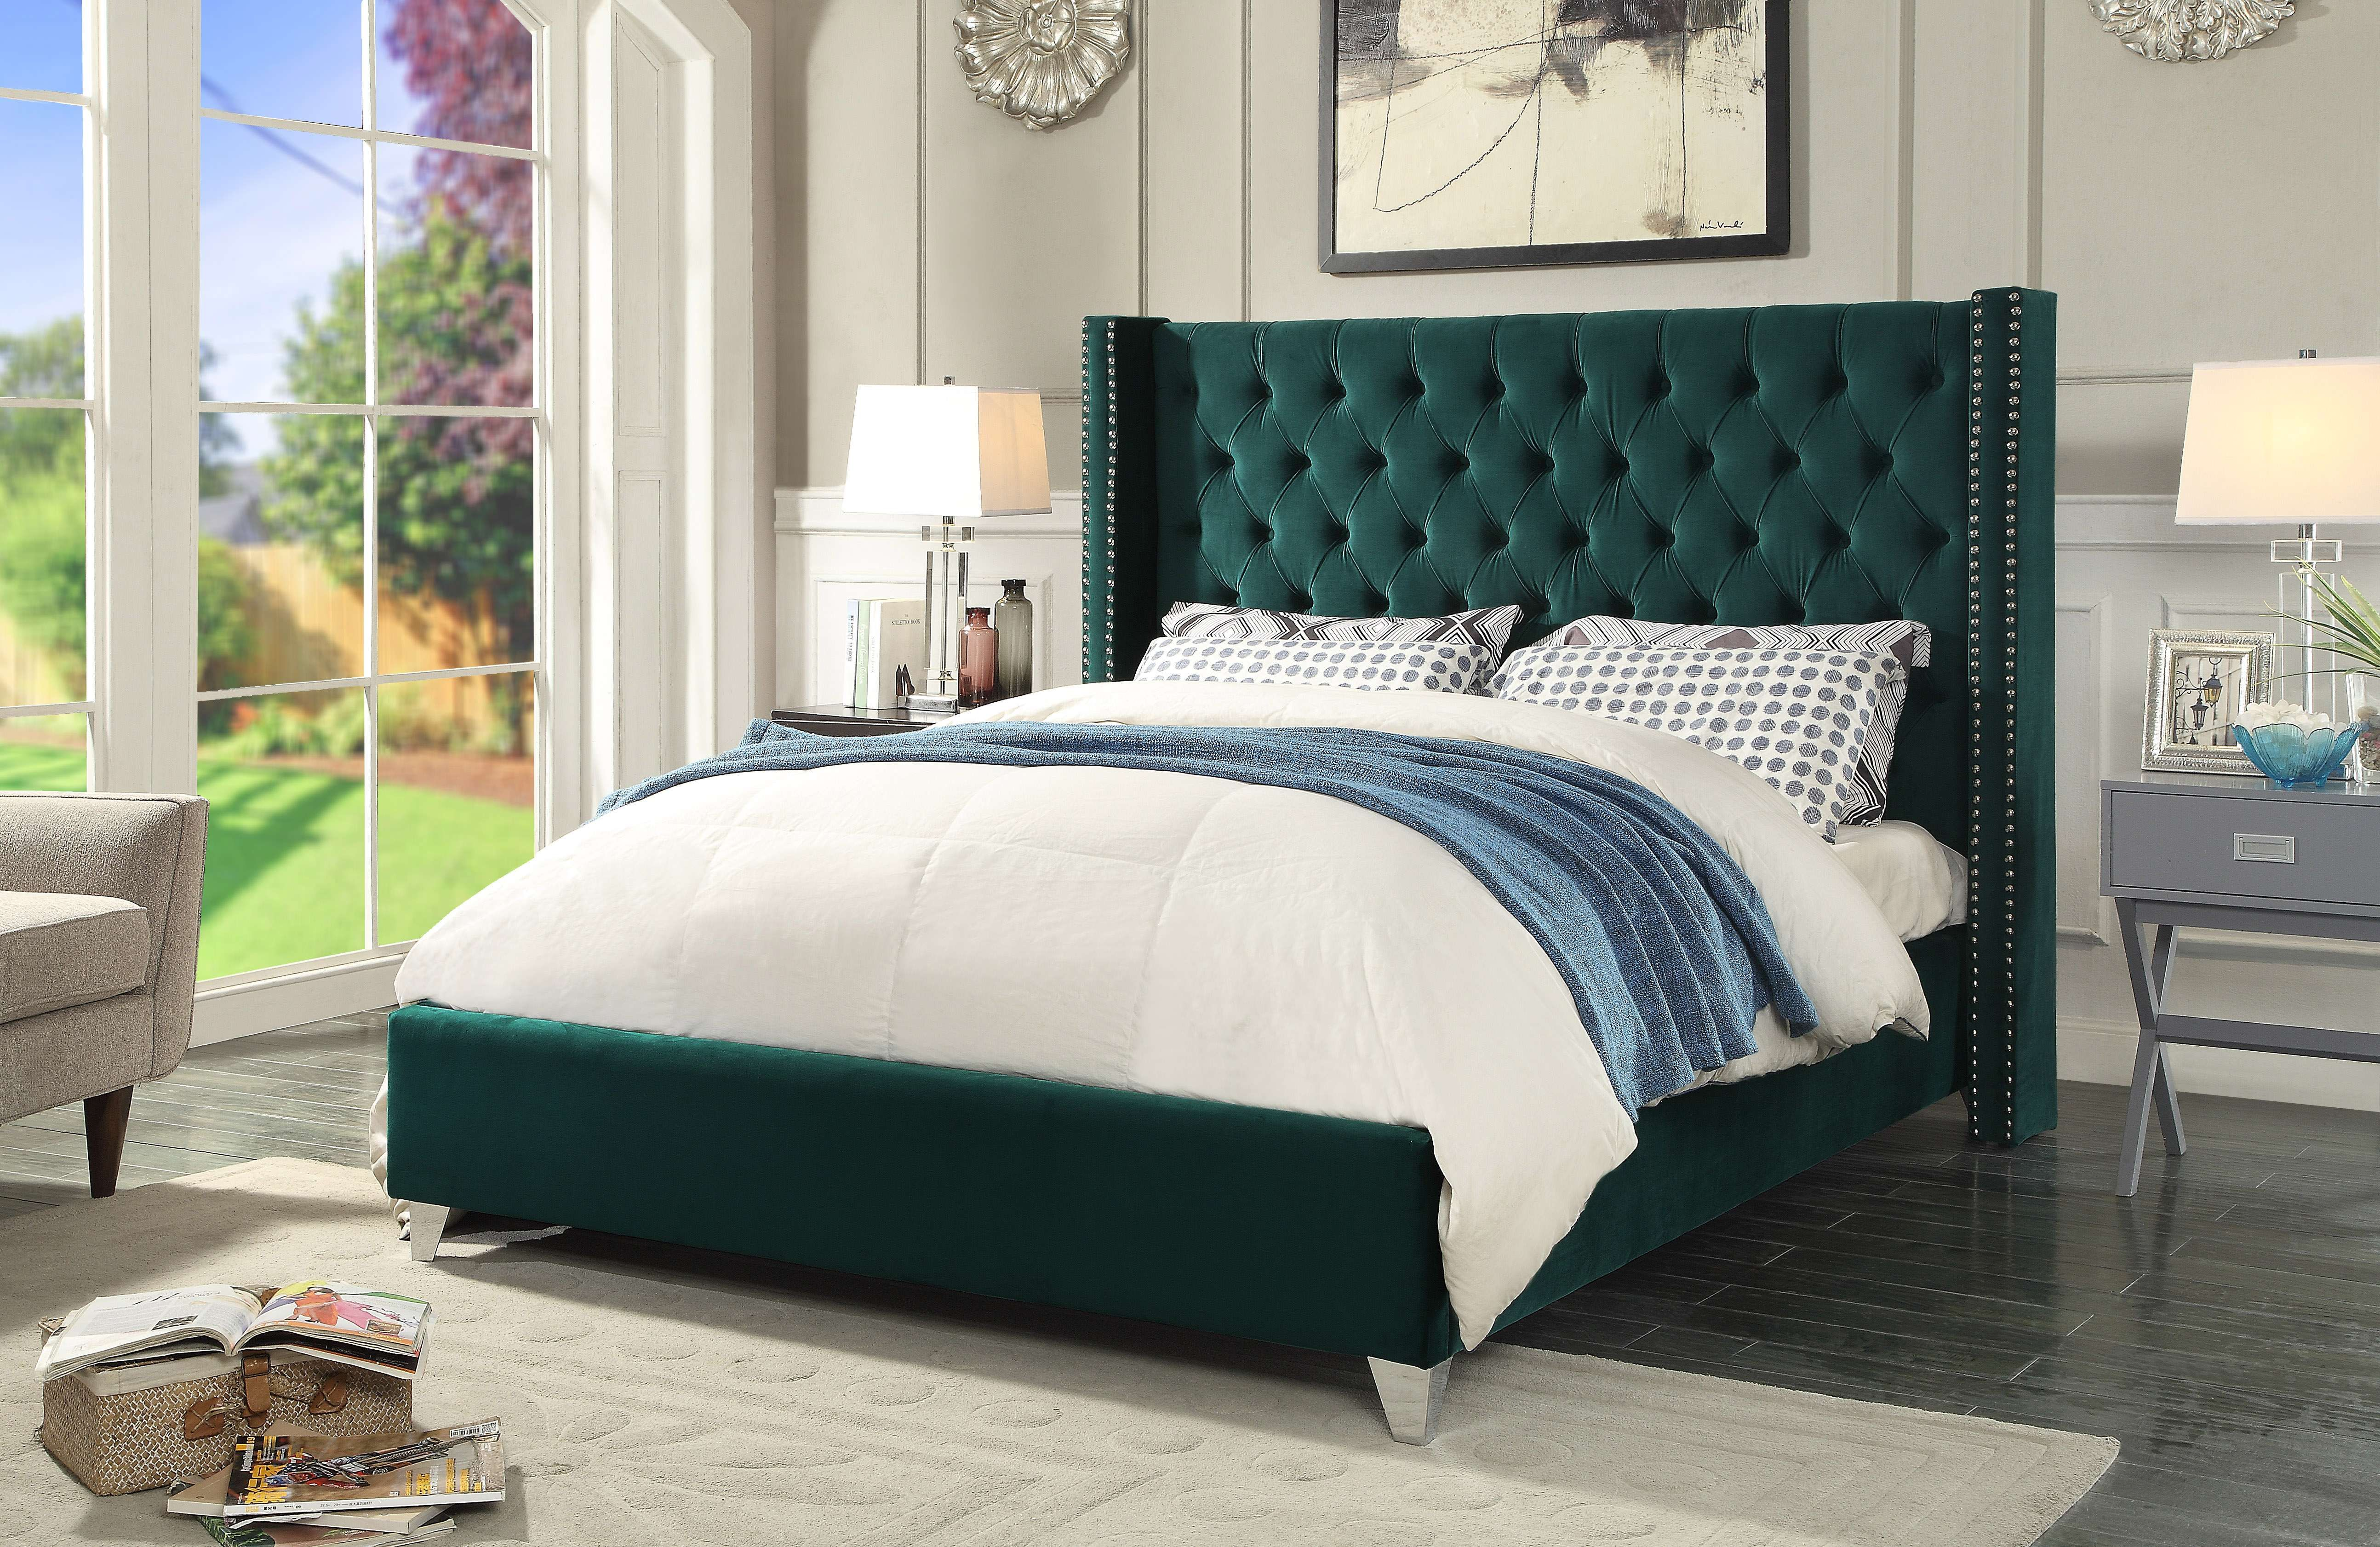 Likebug Dowling Divan Queen Size Bed Frame Katil Queen Bed